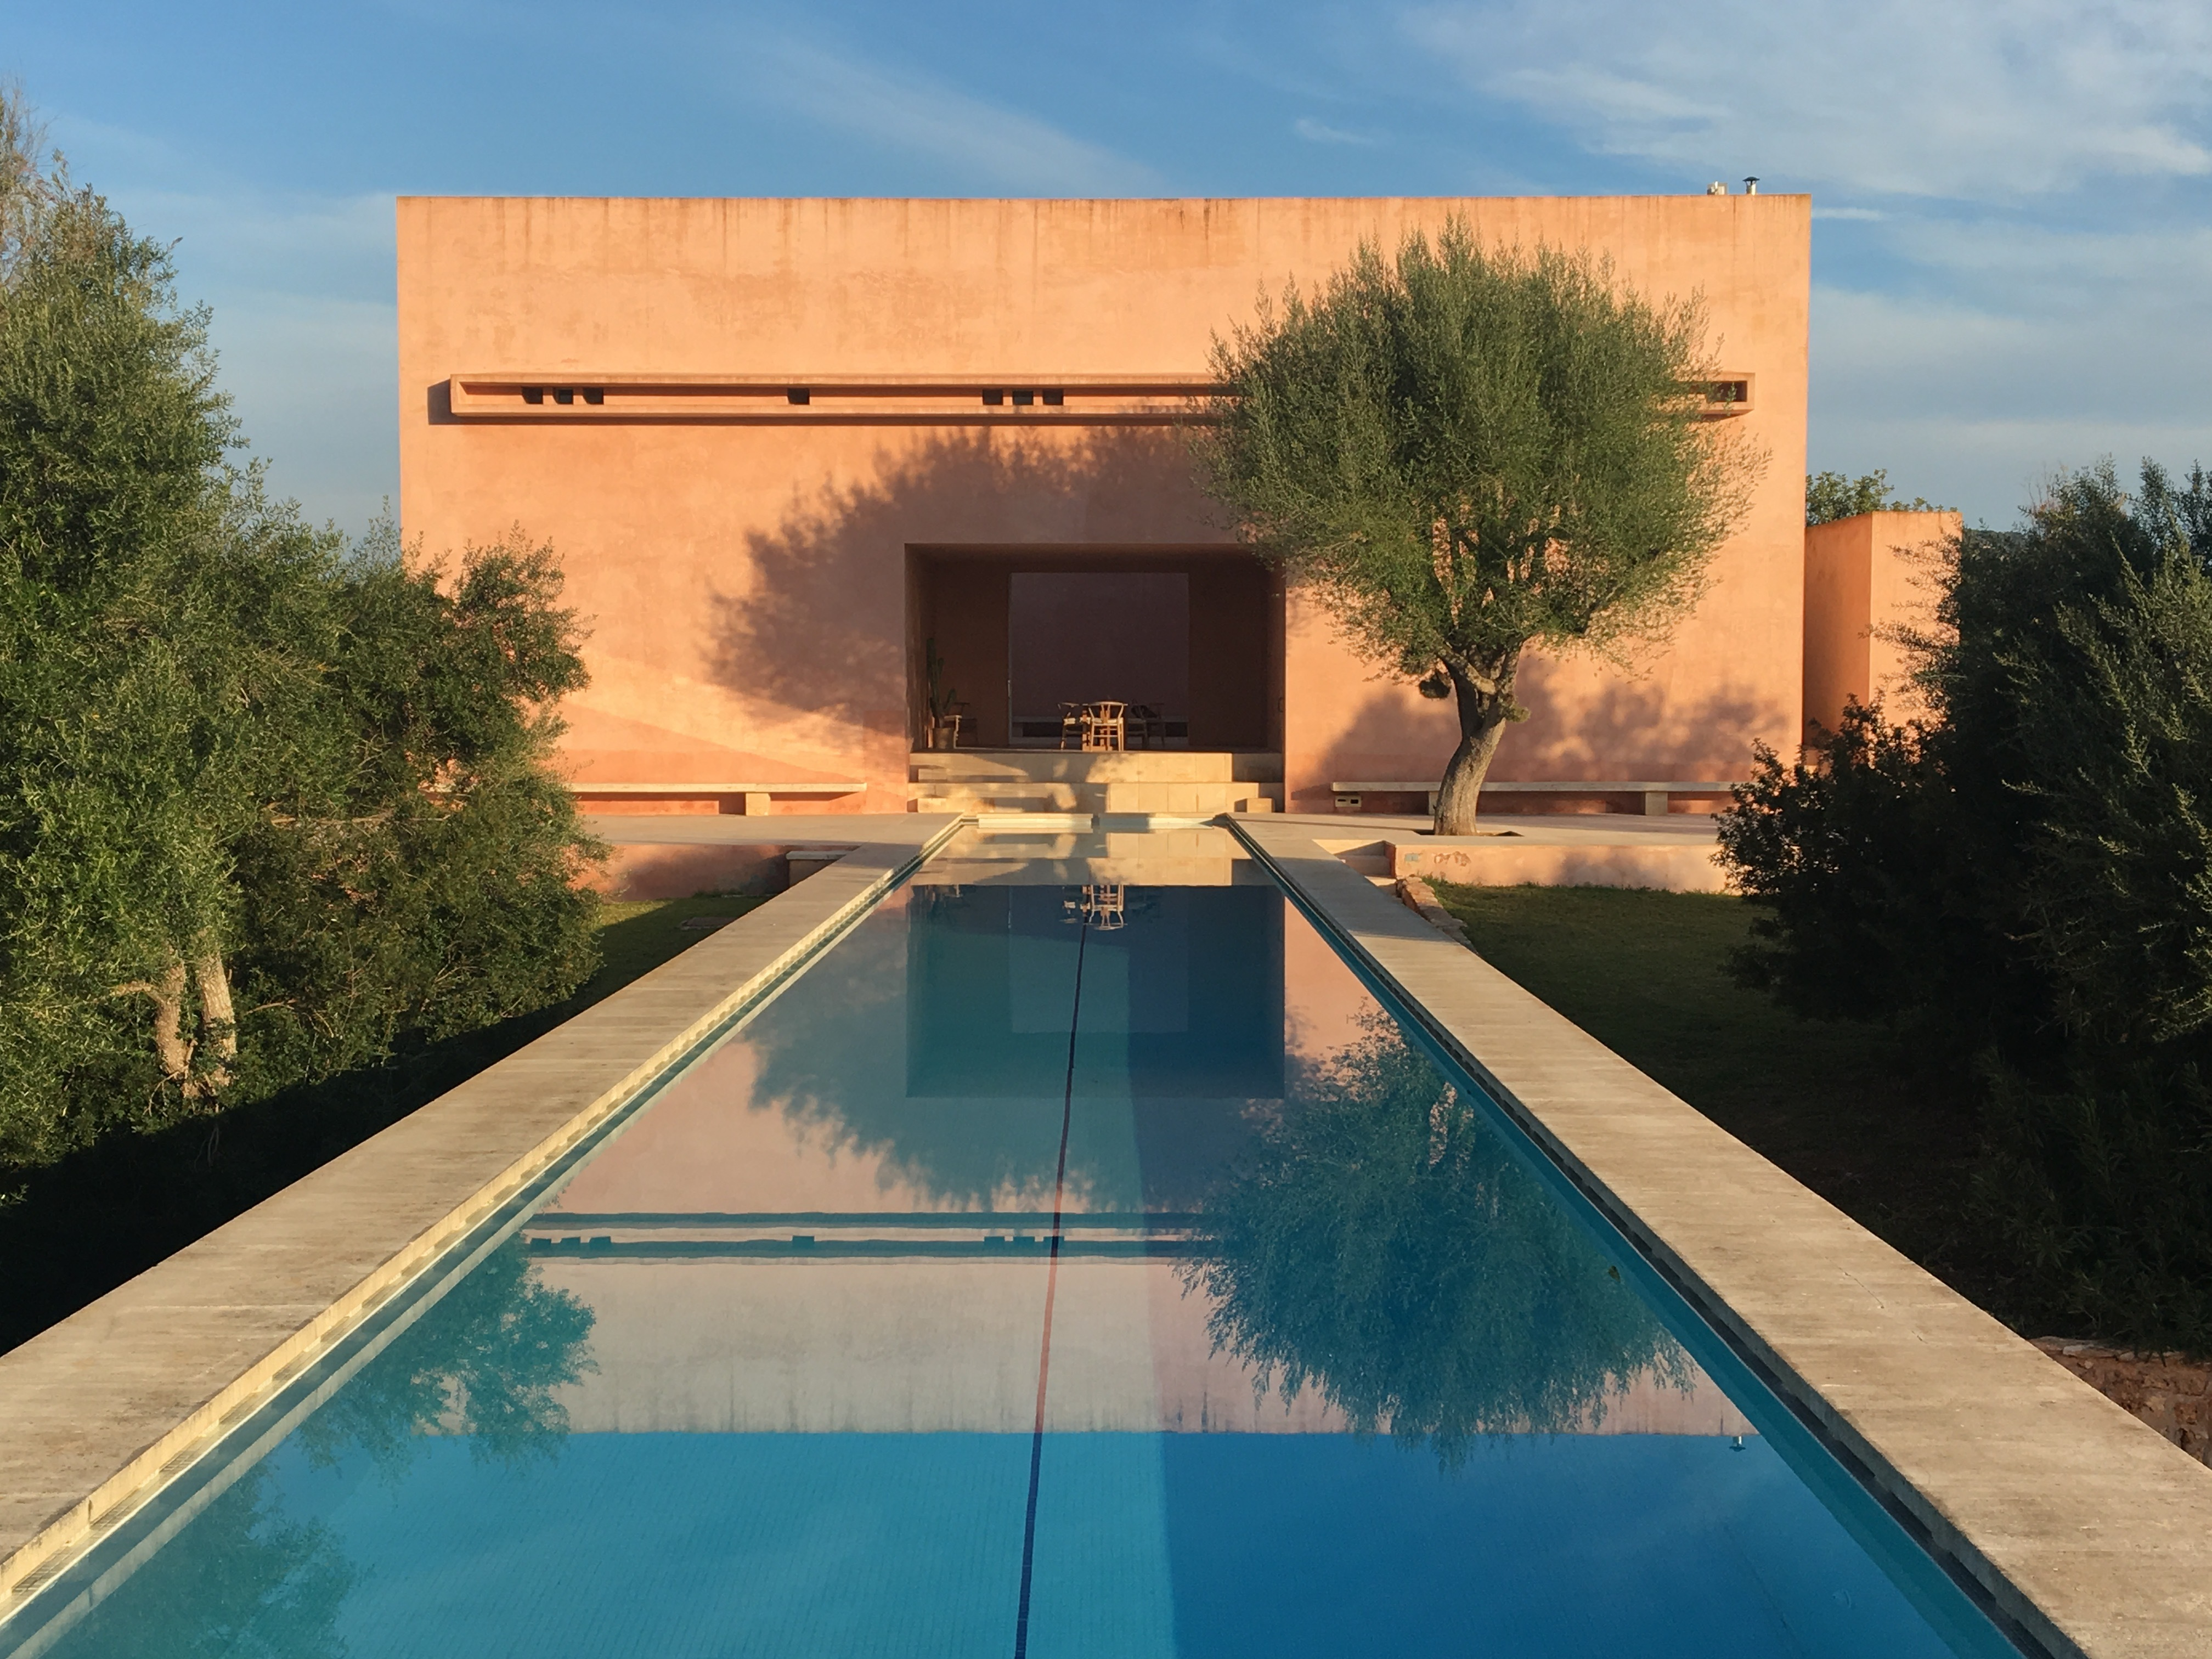 The neuendorf house by john pawson and claudio silvestrin stylepark pool in front of the fortress like home malvernweather Choice Image